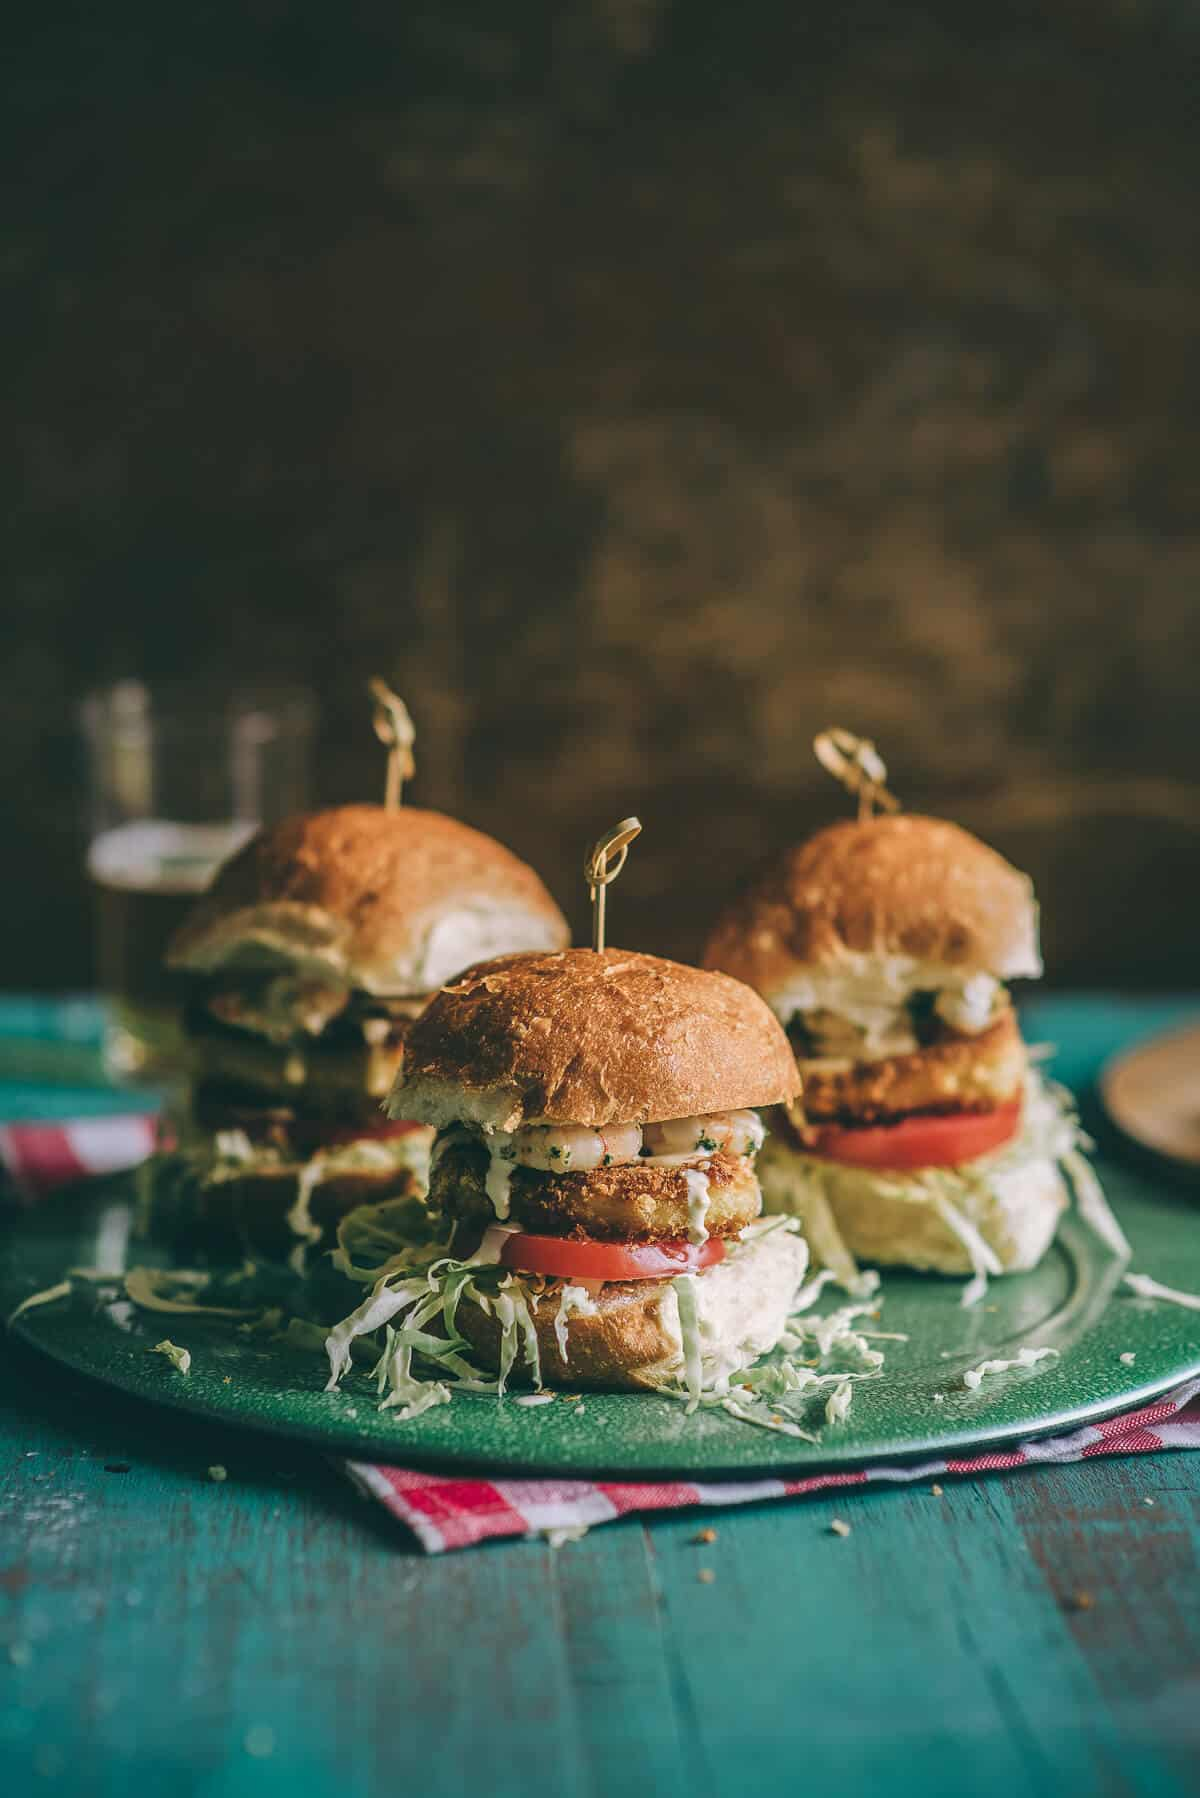 three burgers on a green plate on a table